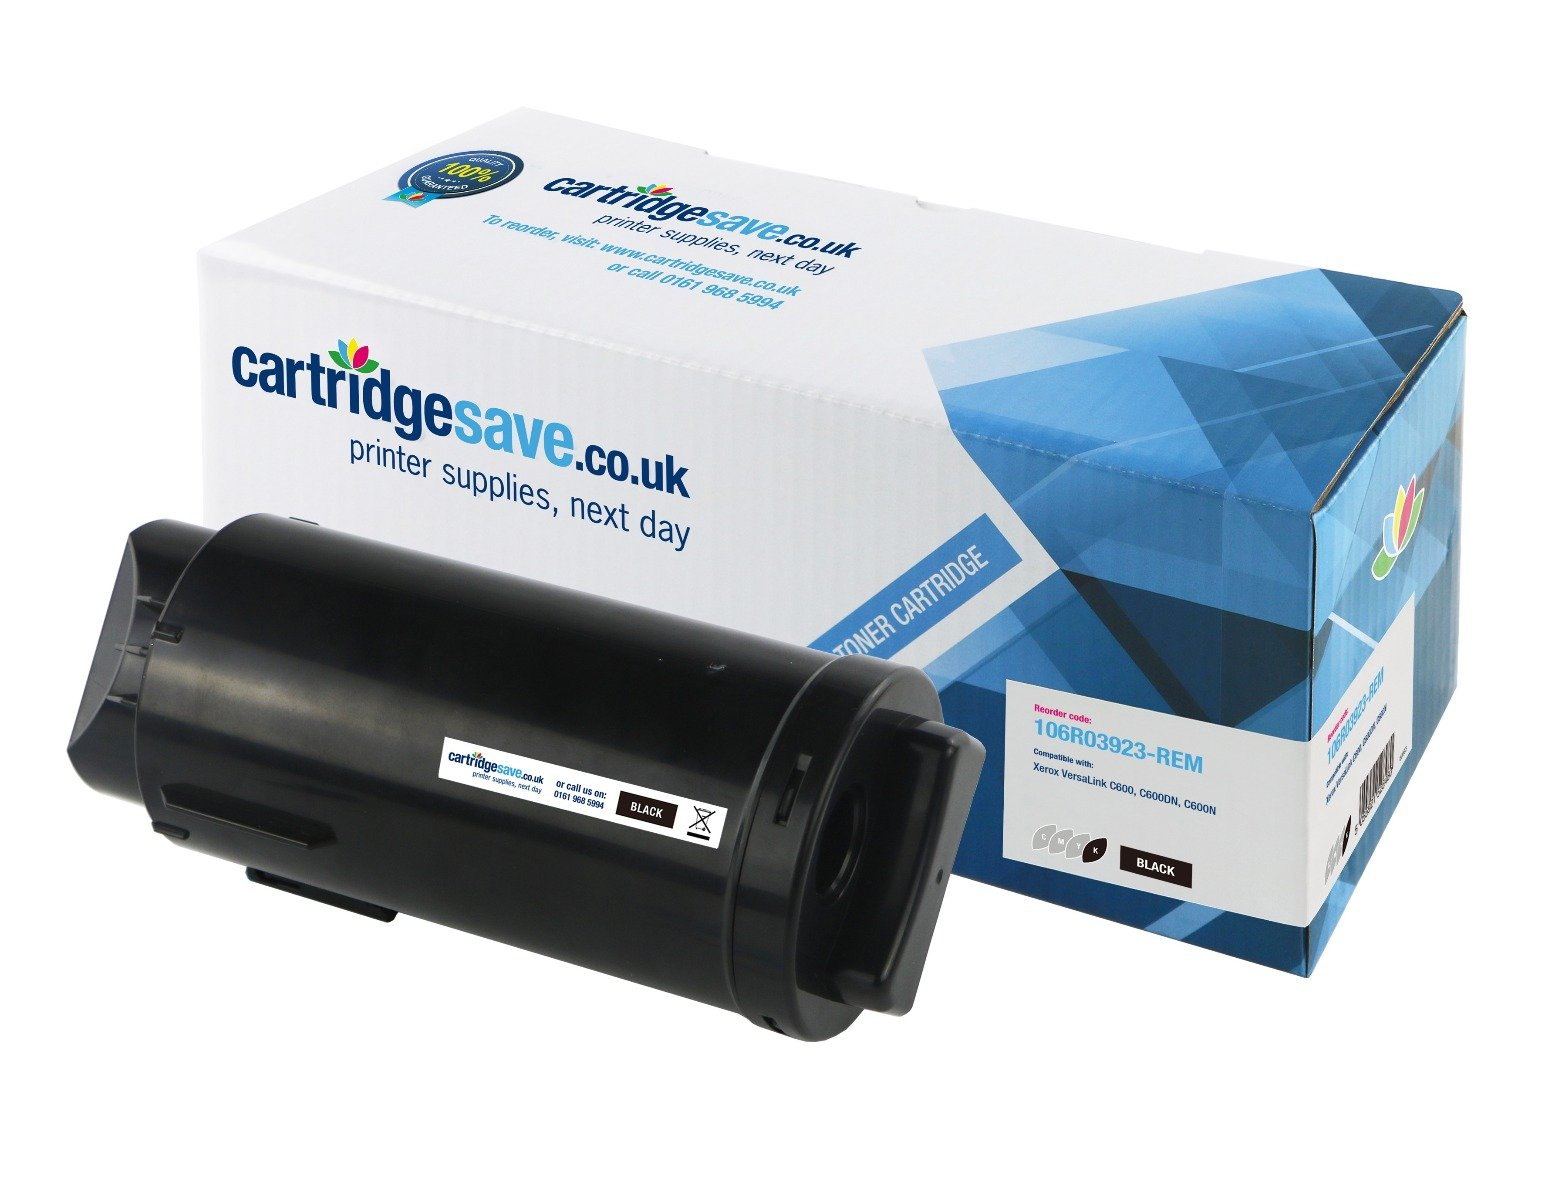 Compatible Extra High Capacity Black Xerox 106R03923 Toner Cartridge - (106R03923)